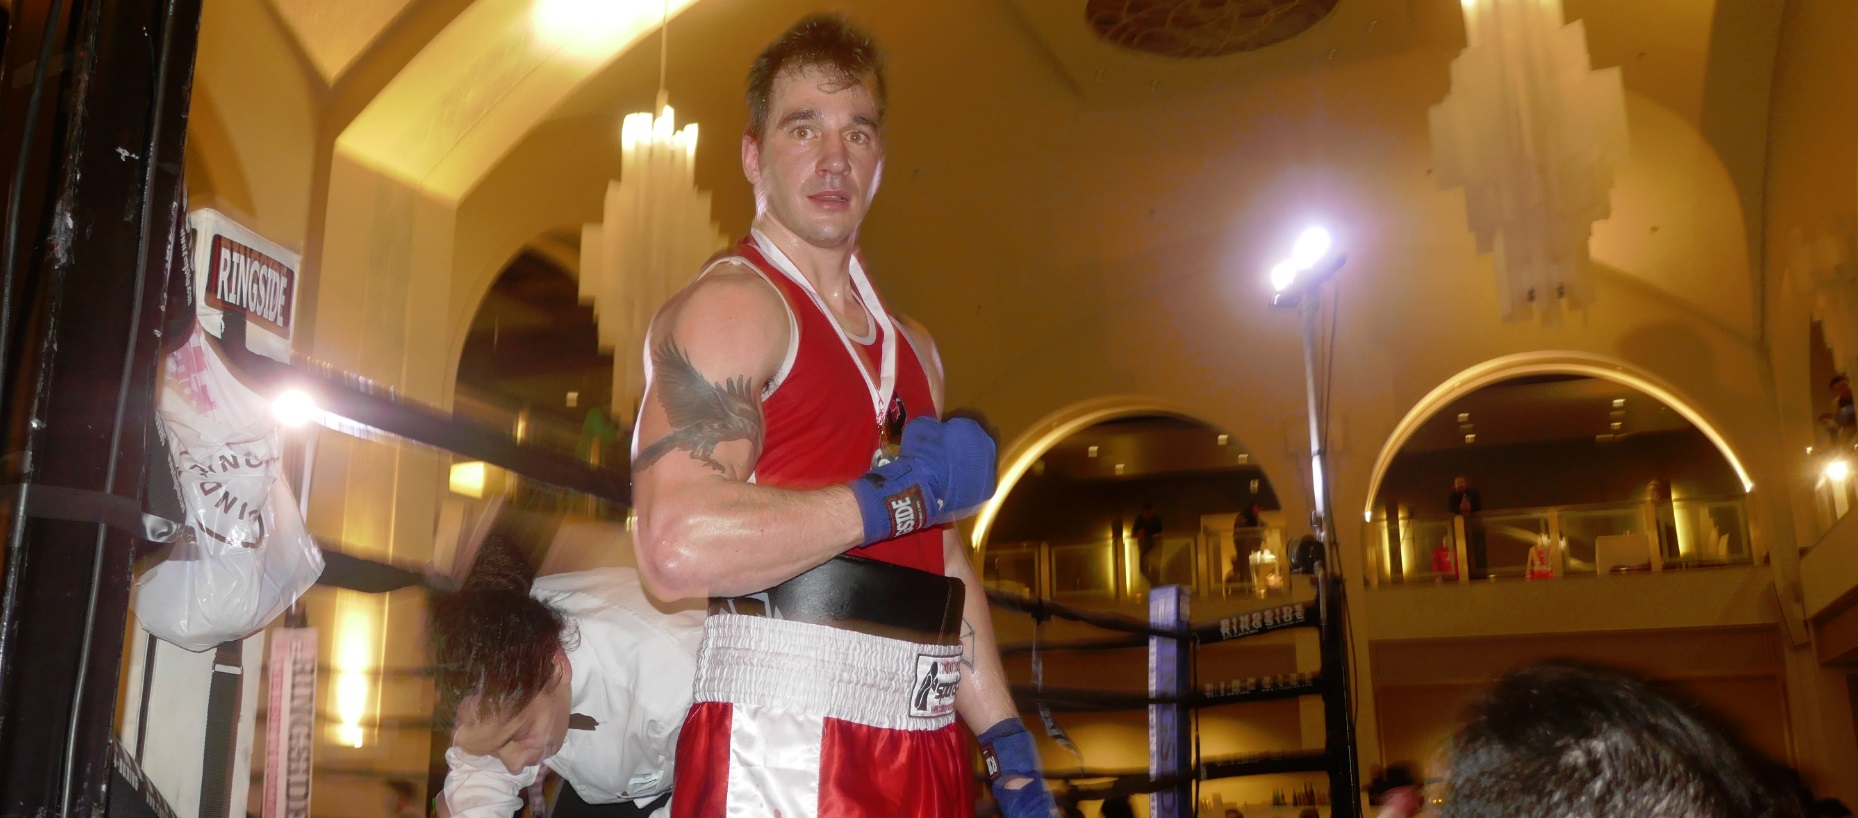 red shirt boxer after the match